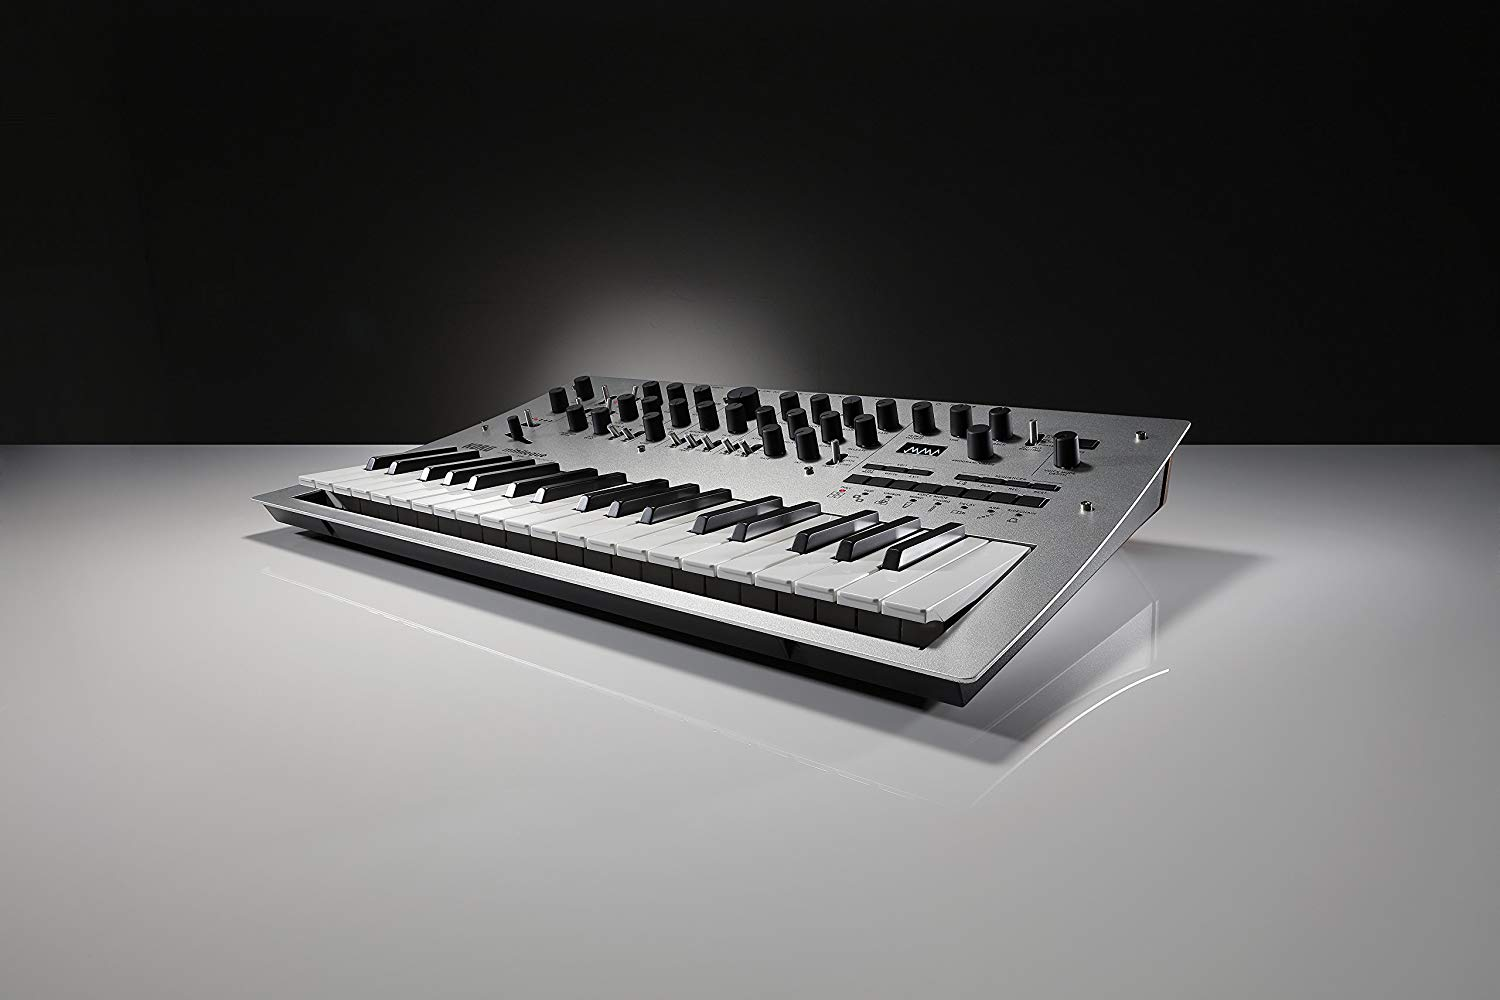 Best Synthesizer Keyboard [REVIEW] Top Digital Piano Synths